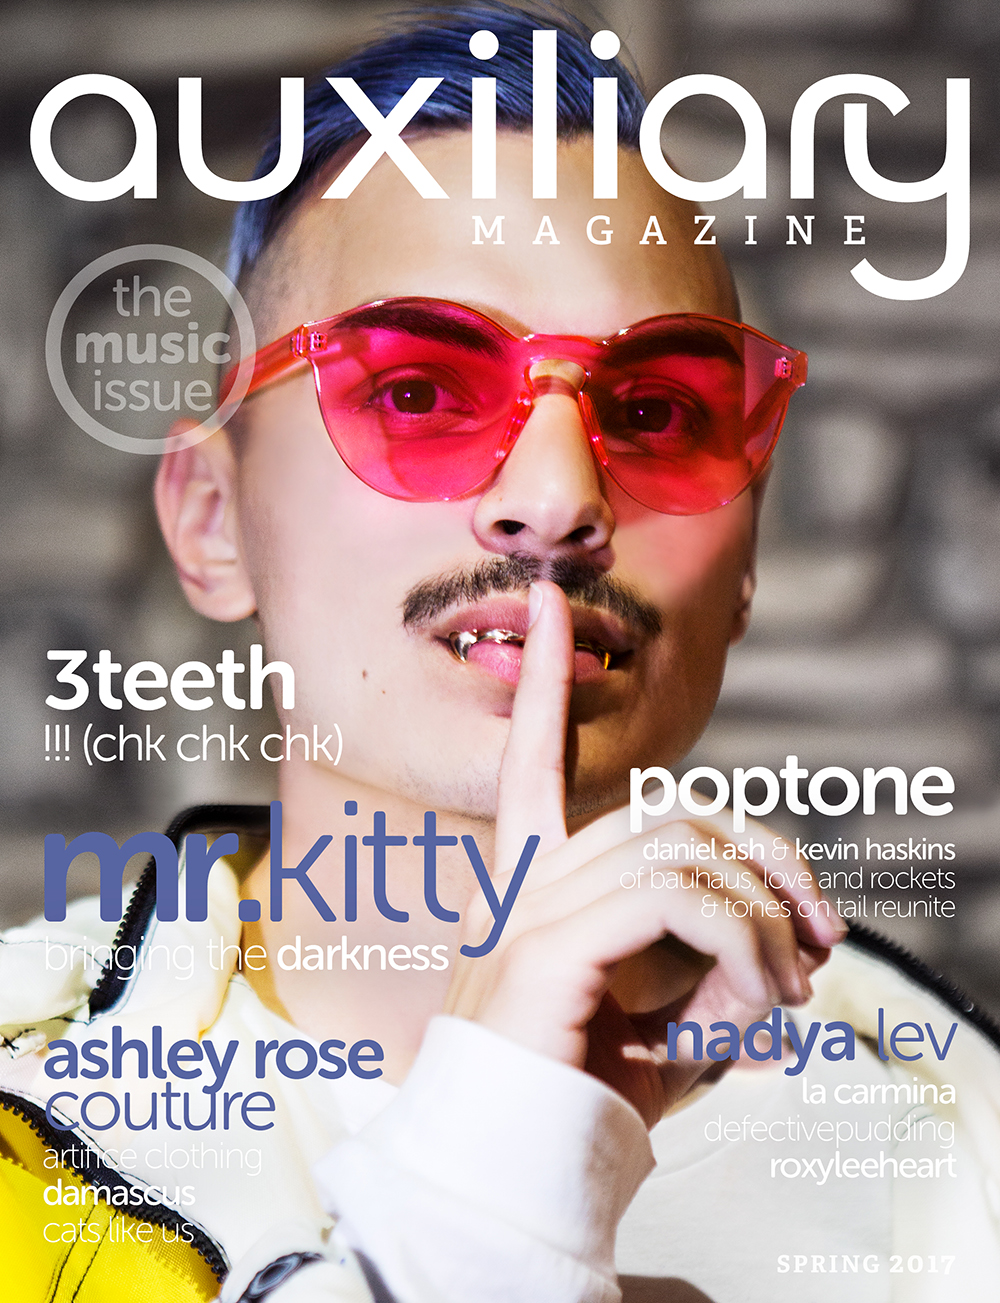 Auxiliary Magazine Spring 2017 Issue